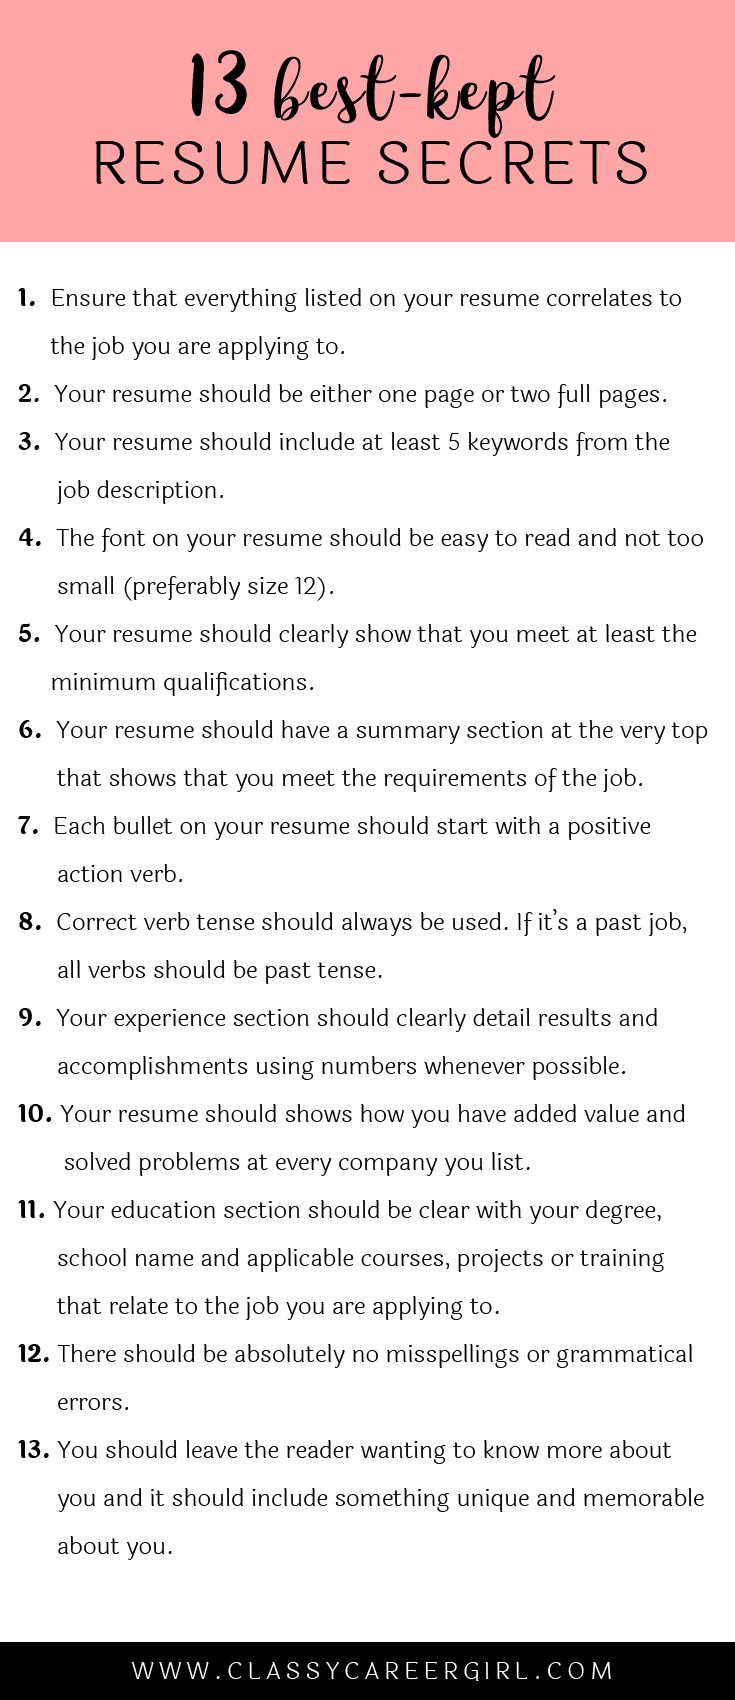 Opposenewapstandardsus  Wonderful  Ideas About Resume On Pinterest  Cv Format Resume Cv And  With Exciting Some Hiring Managers Will Toss Your Resume Out If You Dont Know These  With Alluring Monster Resume Builder Also Medical Resume Examples In Addition Resume Best Practices And Nurse Resume Objective As Well As Office Skills For Resume Additionally Definition Resume From Pinterestcom With Opposenewapstandardsus  Exciting  Ideas About Resume On Pinterest  Cv Format Resume Cv And  With Alluring Some Hiring Managers Will Toss Your Resume Out If You Dont Know These  And Wonderful Monster Resume Builder Also Medical Resume Examples In Addition Resume Best Practices From Pinterestcom